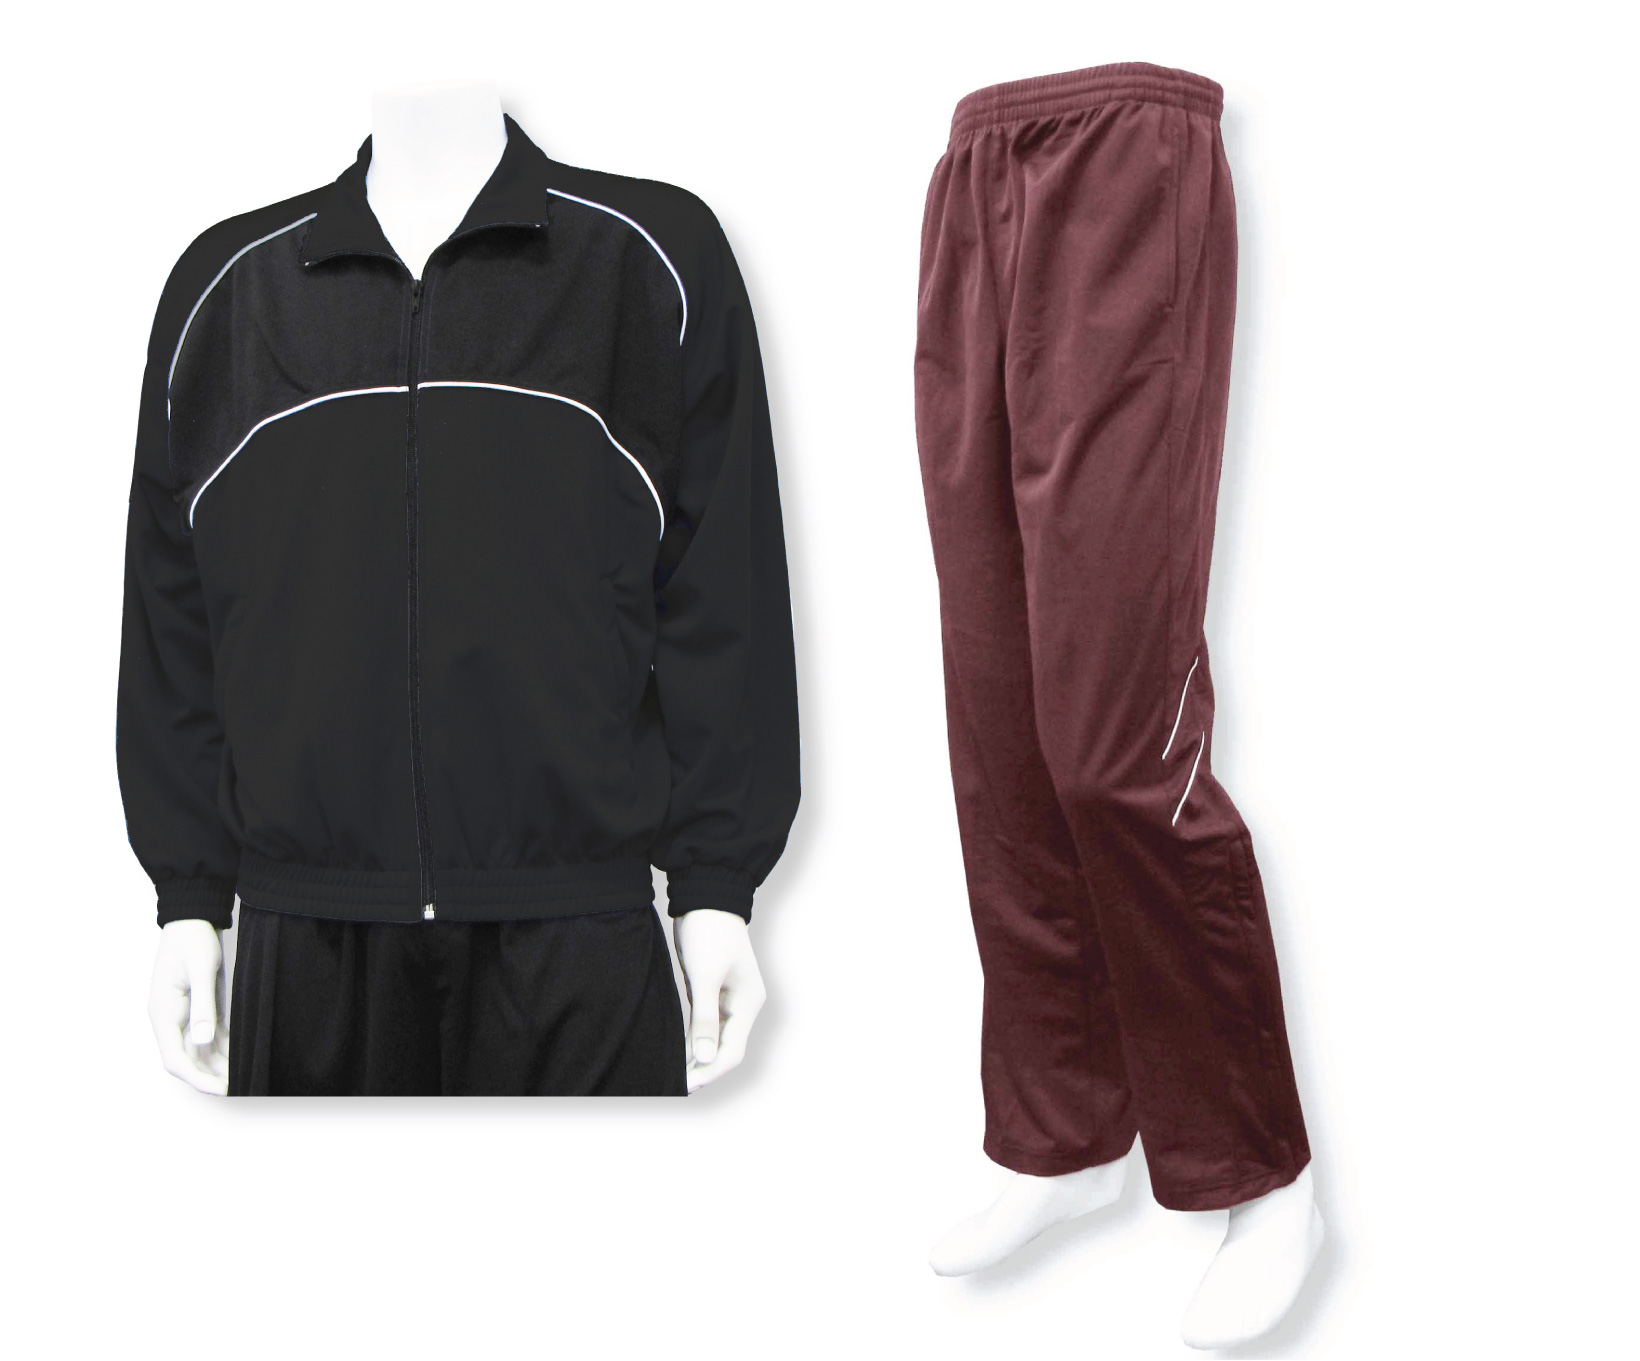 men's casual warmup set with black jacket and maroon pants by Code Four Athletics